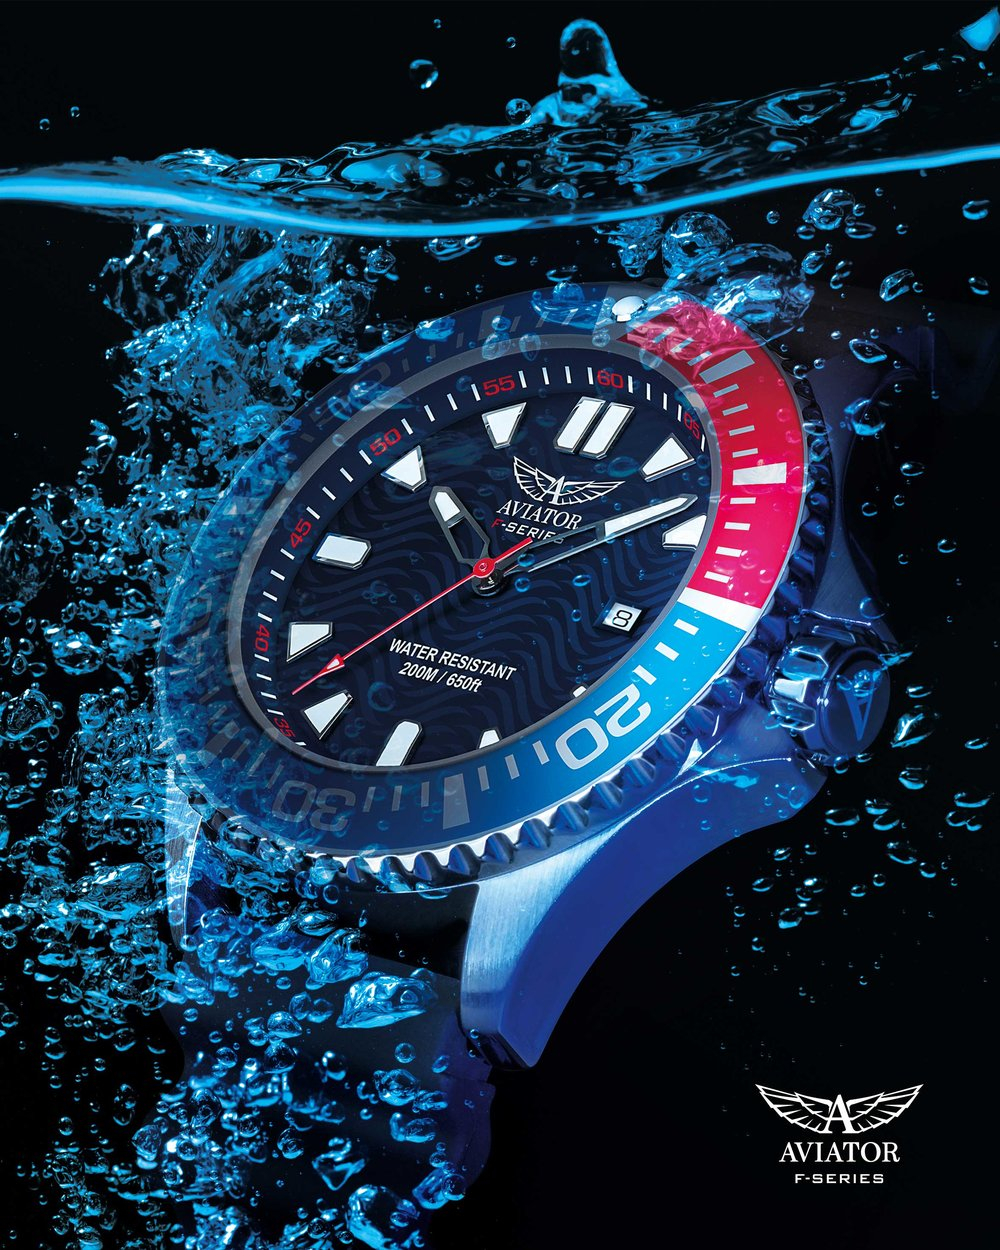 aviator-divers-watch_scorpio-worldwide_travel-retail-distributor.jpg